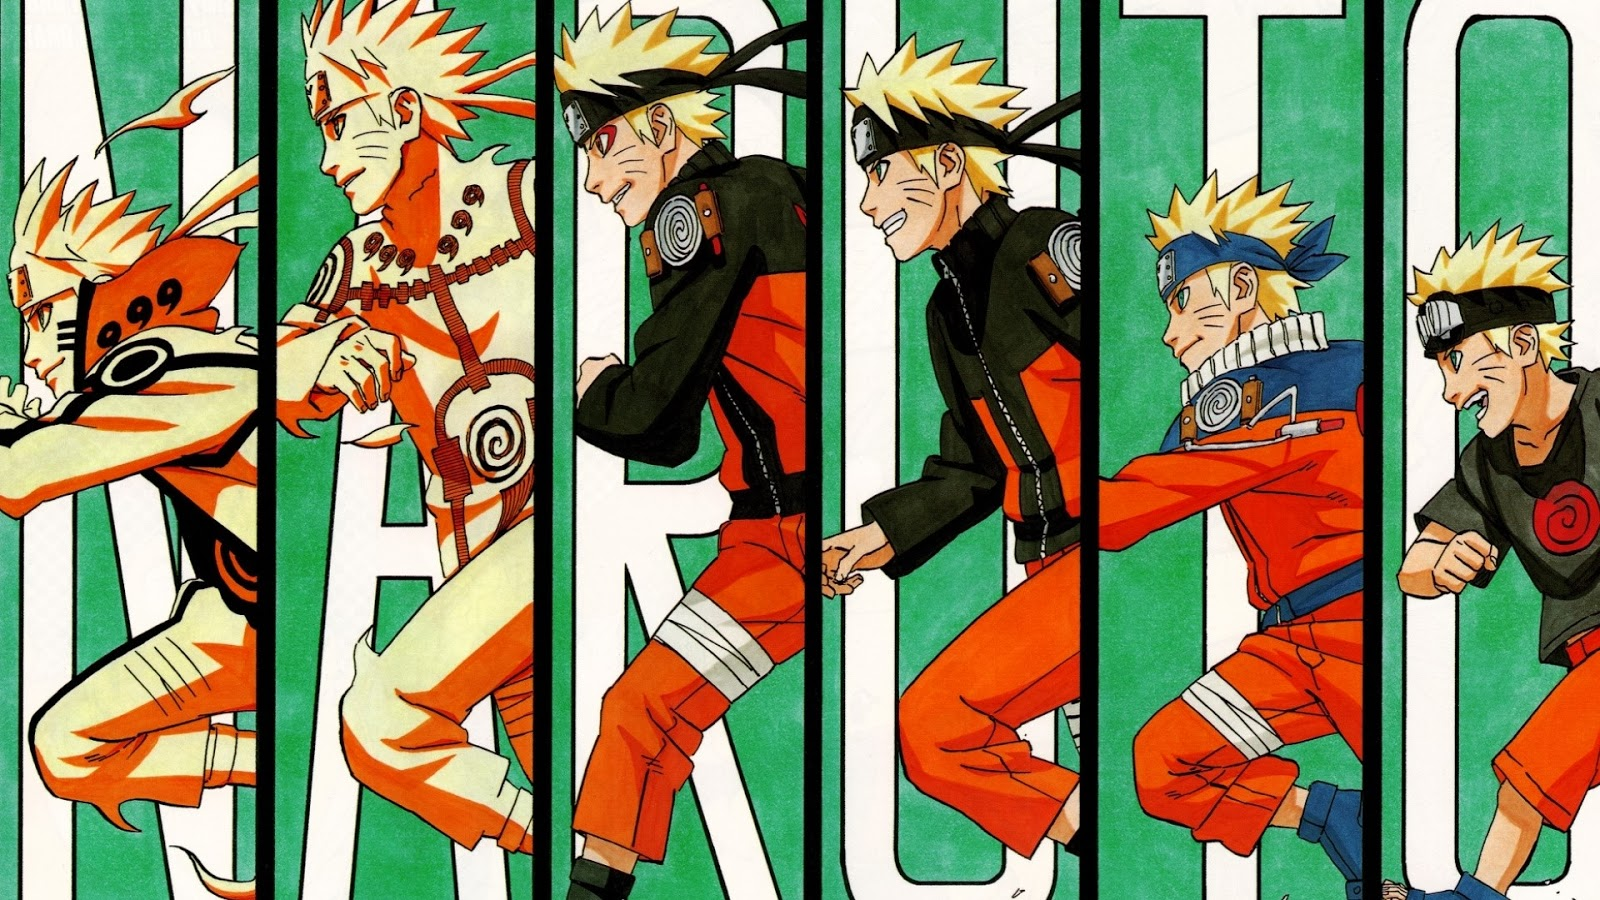 Naruto Shippuden Wallpapers - Evolution of Naruto